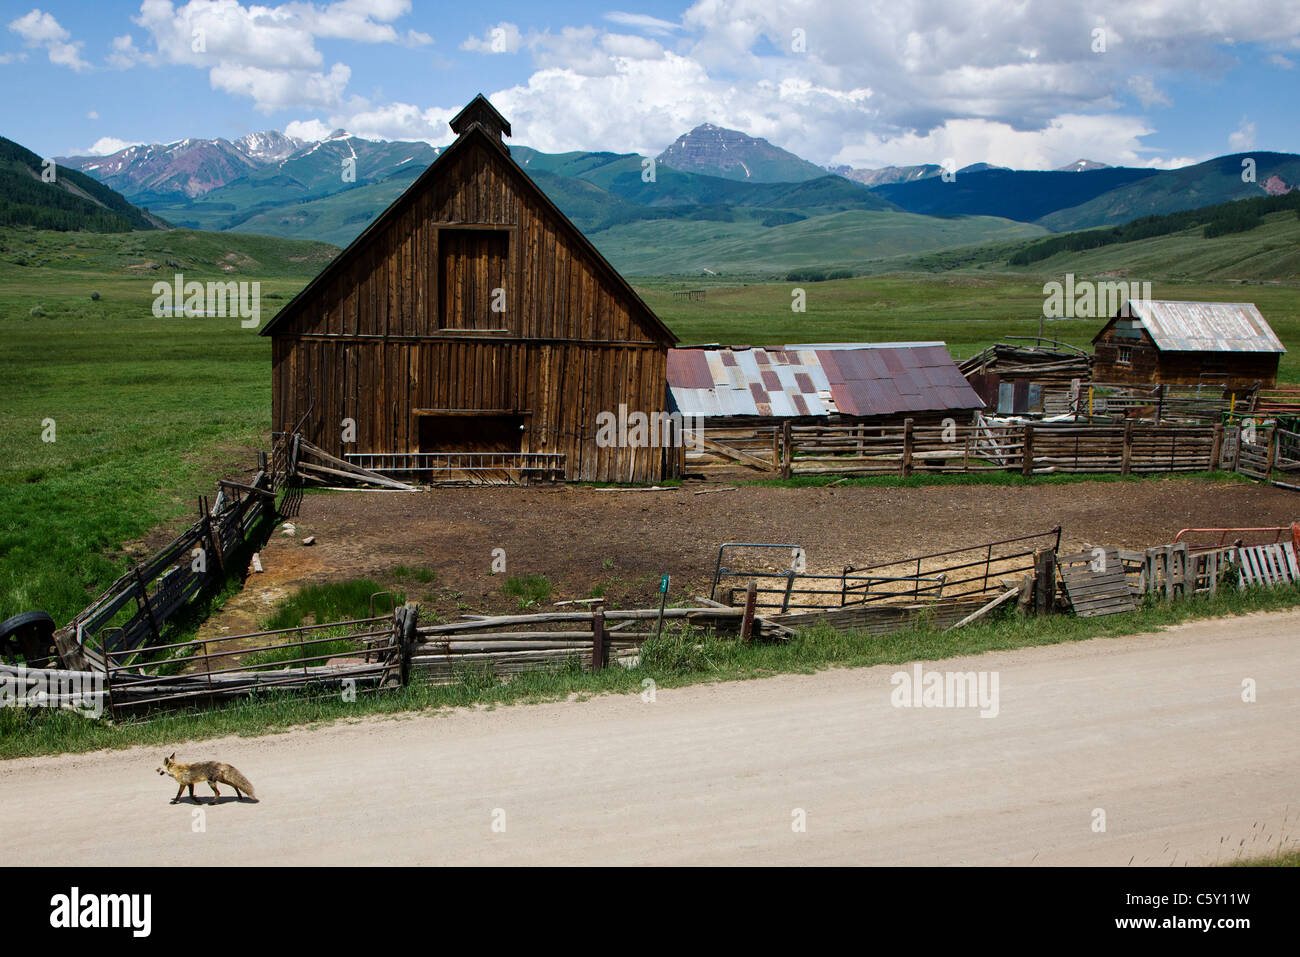 Red fox crosses the road by an old weathered barn on Cold Spring Ranch near Crested Butte, Colorado, USA - Stock Image